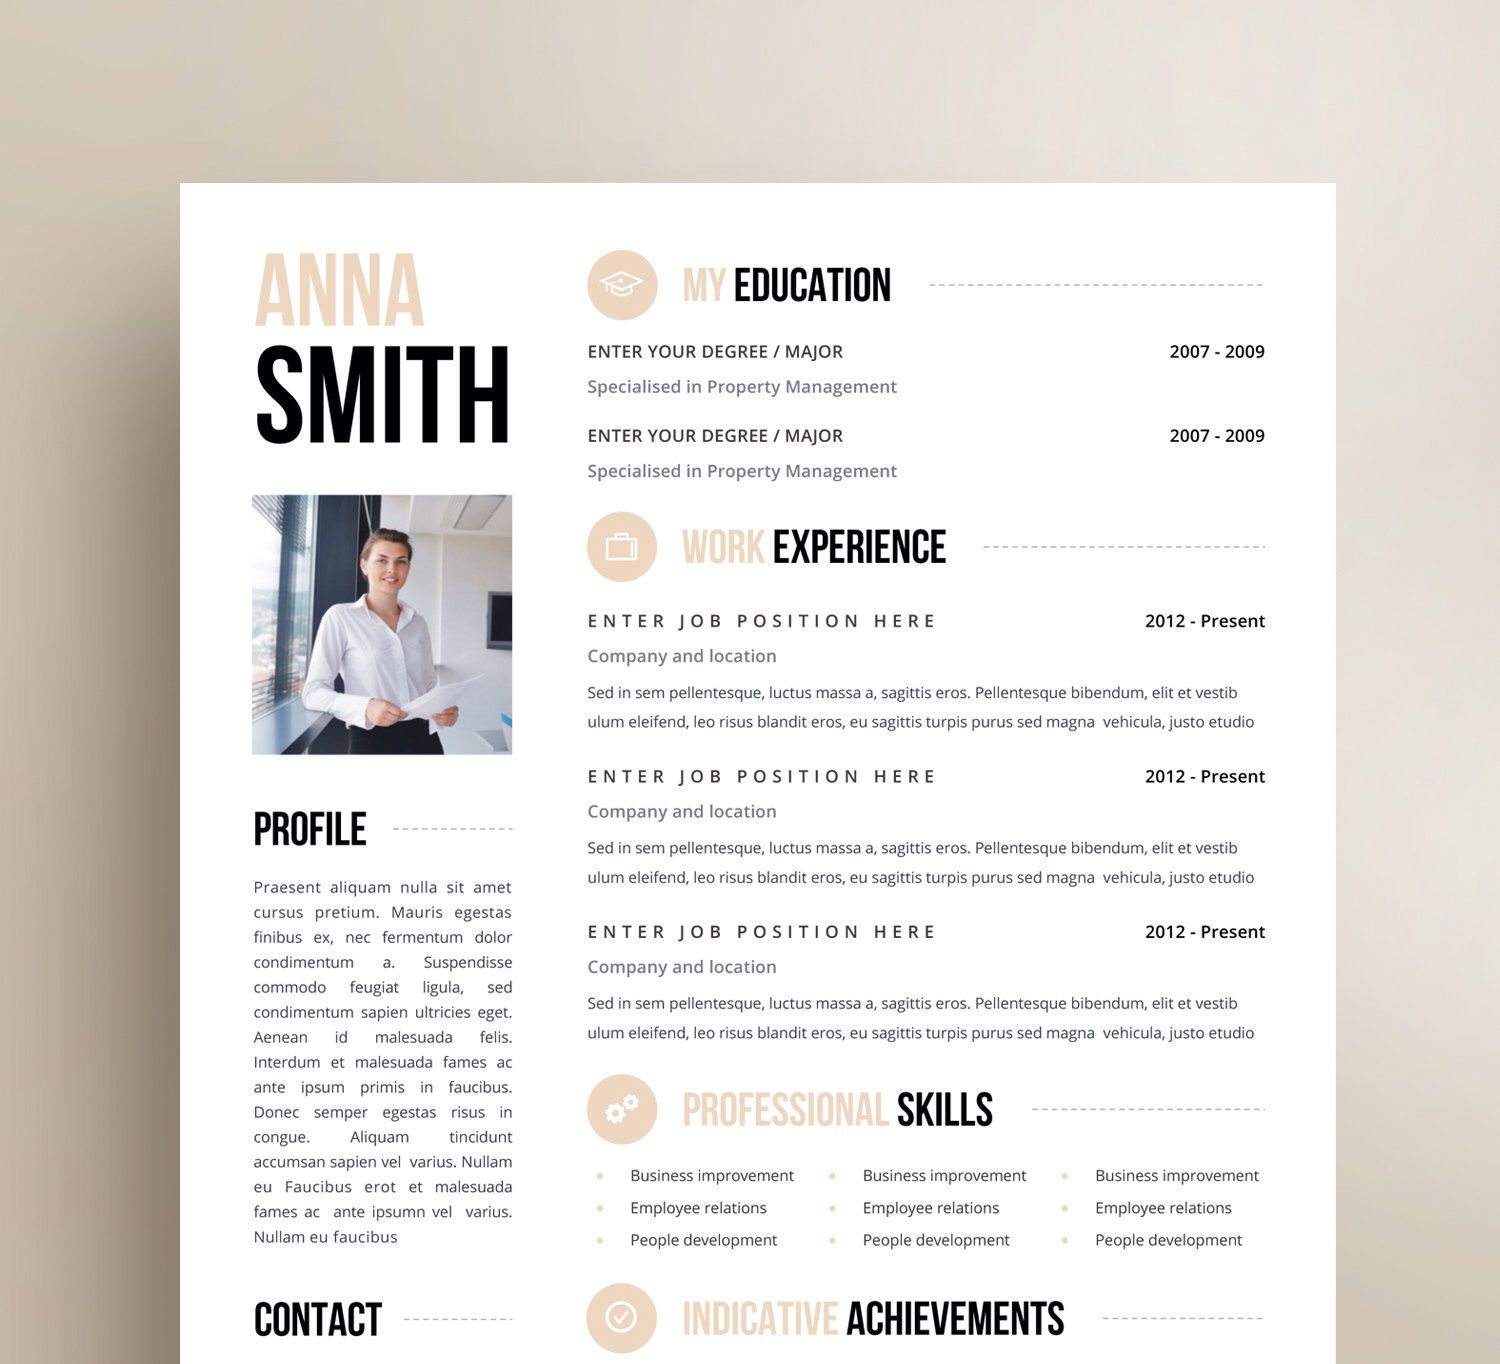 examples of good architecture resumes